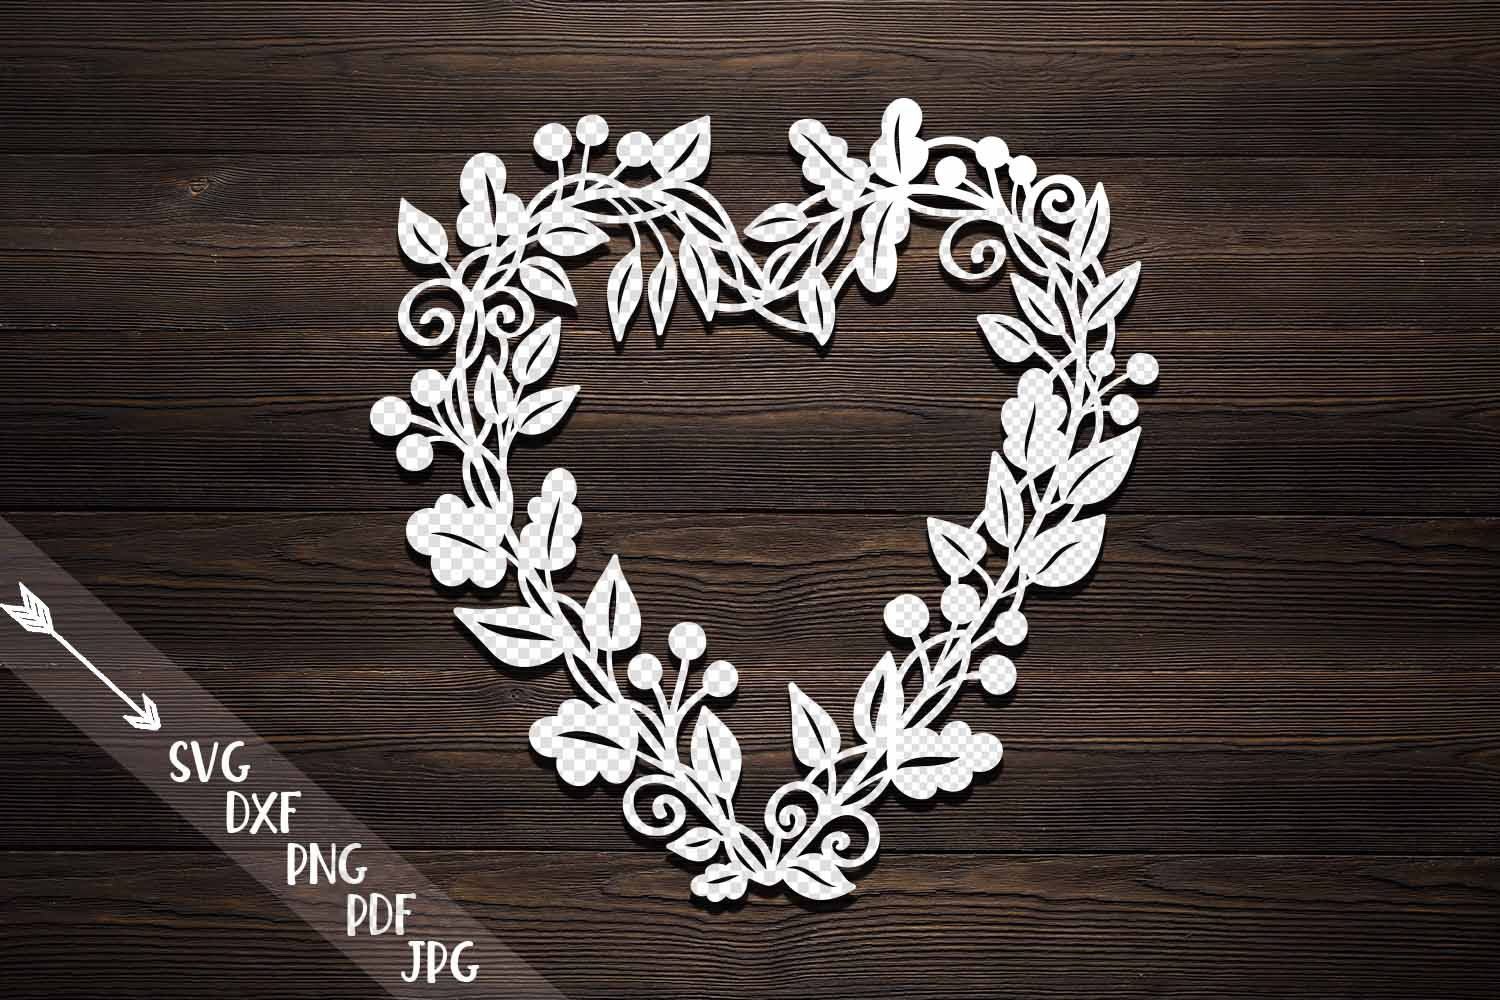 Download Free Fall Wreath Graphic By Cornelia Creative Fabrica for Cricut Explore, Silhouette and other cutting machines.